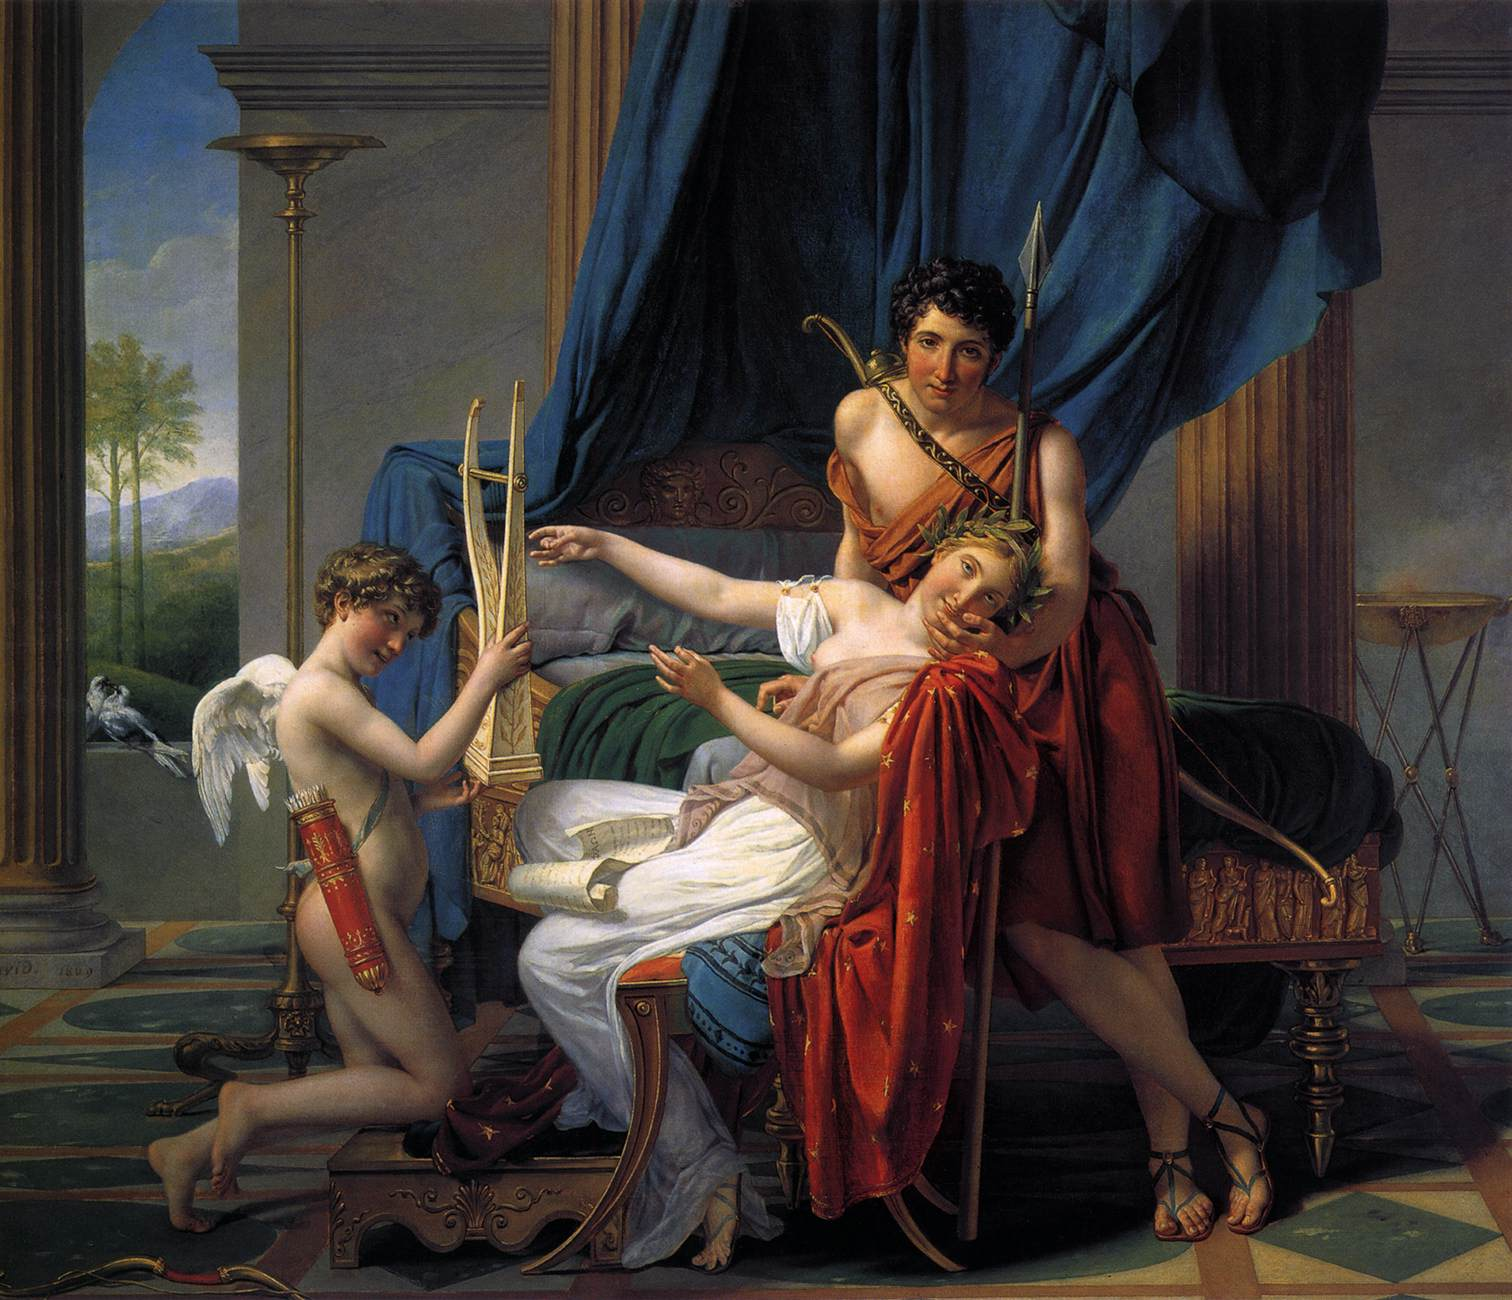 Sappho and Phaon, 1809 — Jacques-Louis David